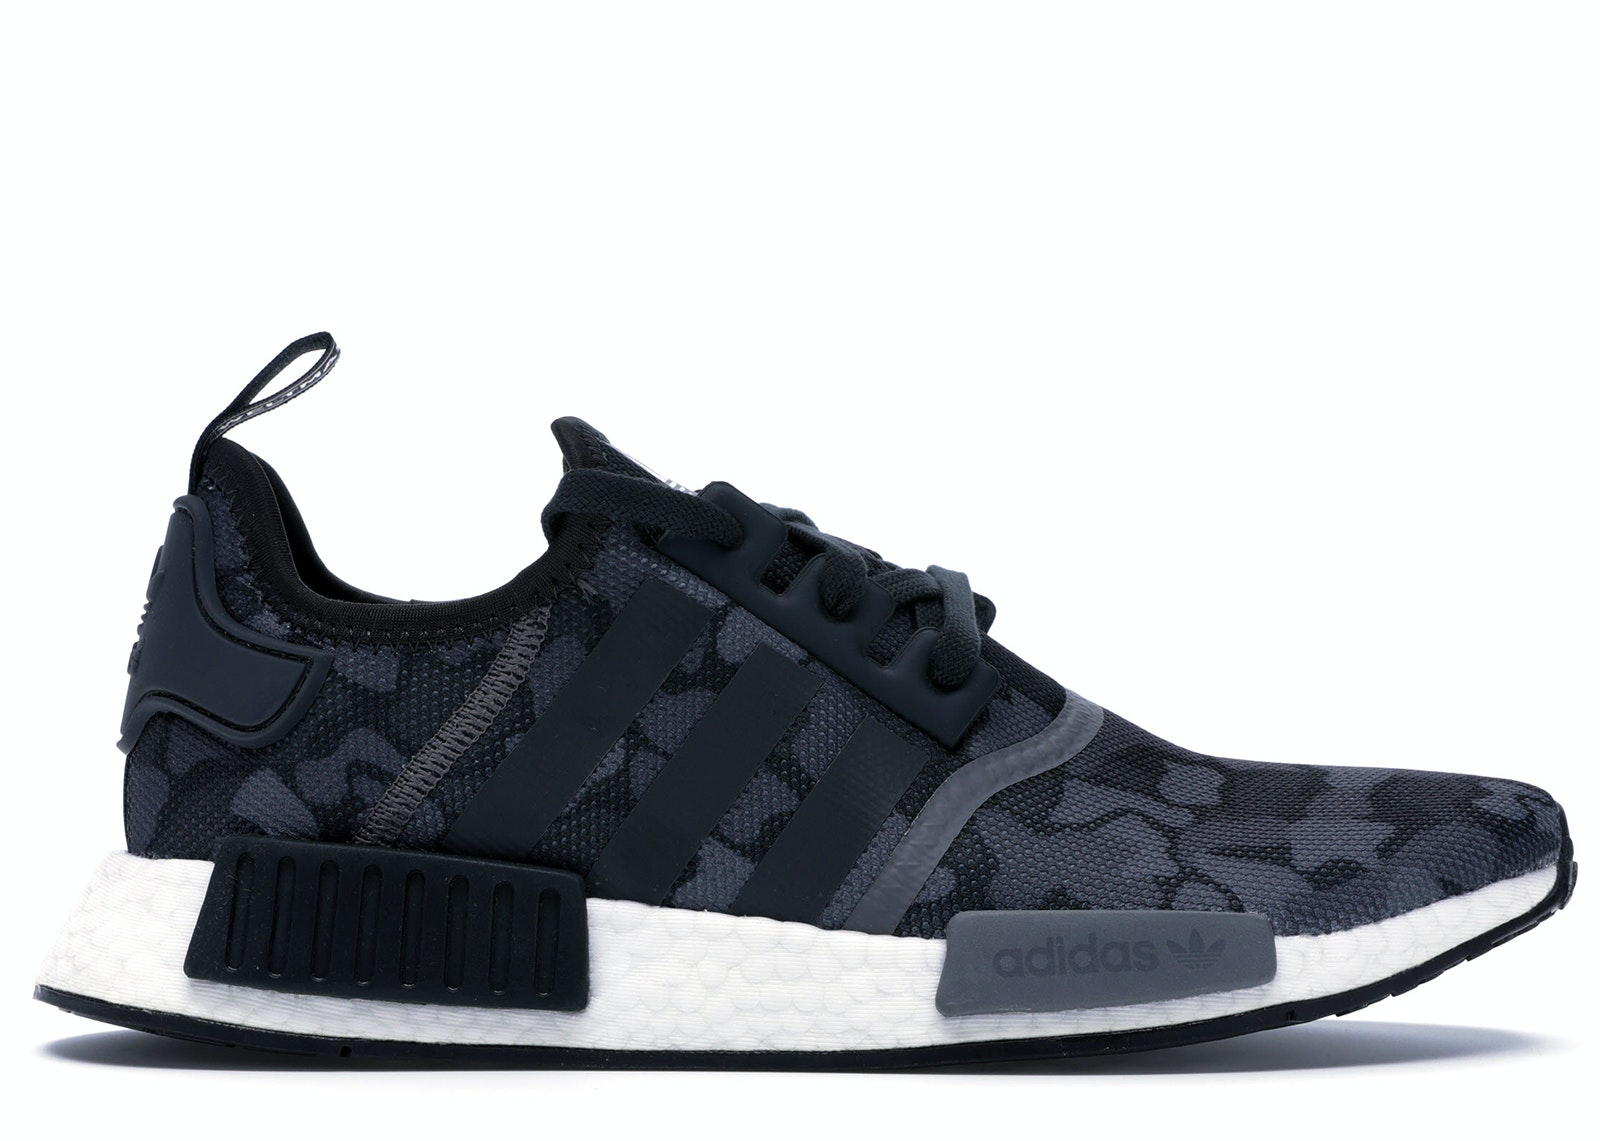 adidas NMD R1 Duck Camo Core Black